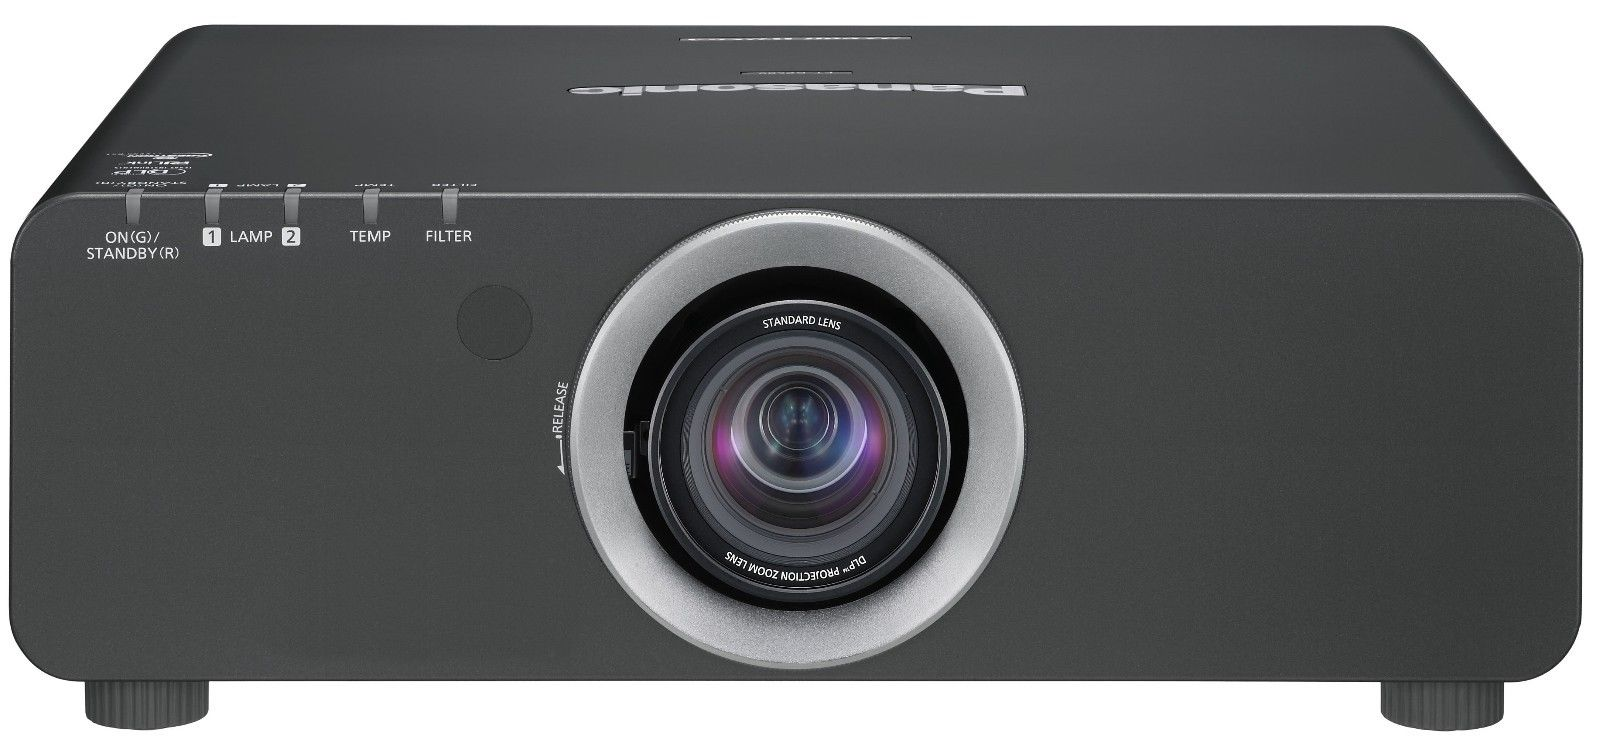 pt dz680uk dlp projector 1080p hdtv 16